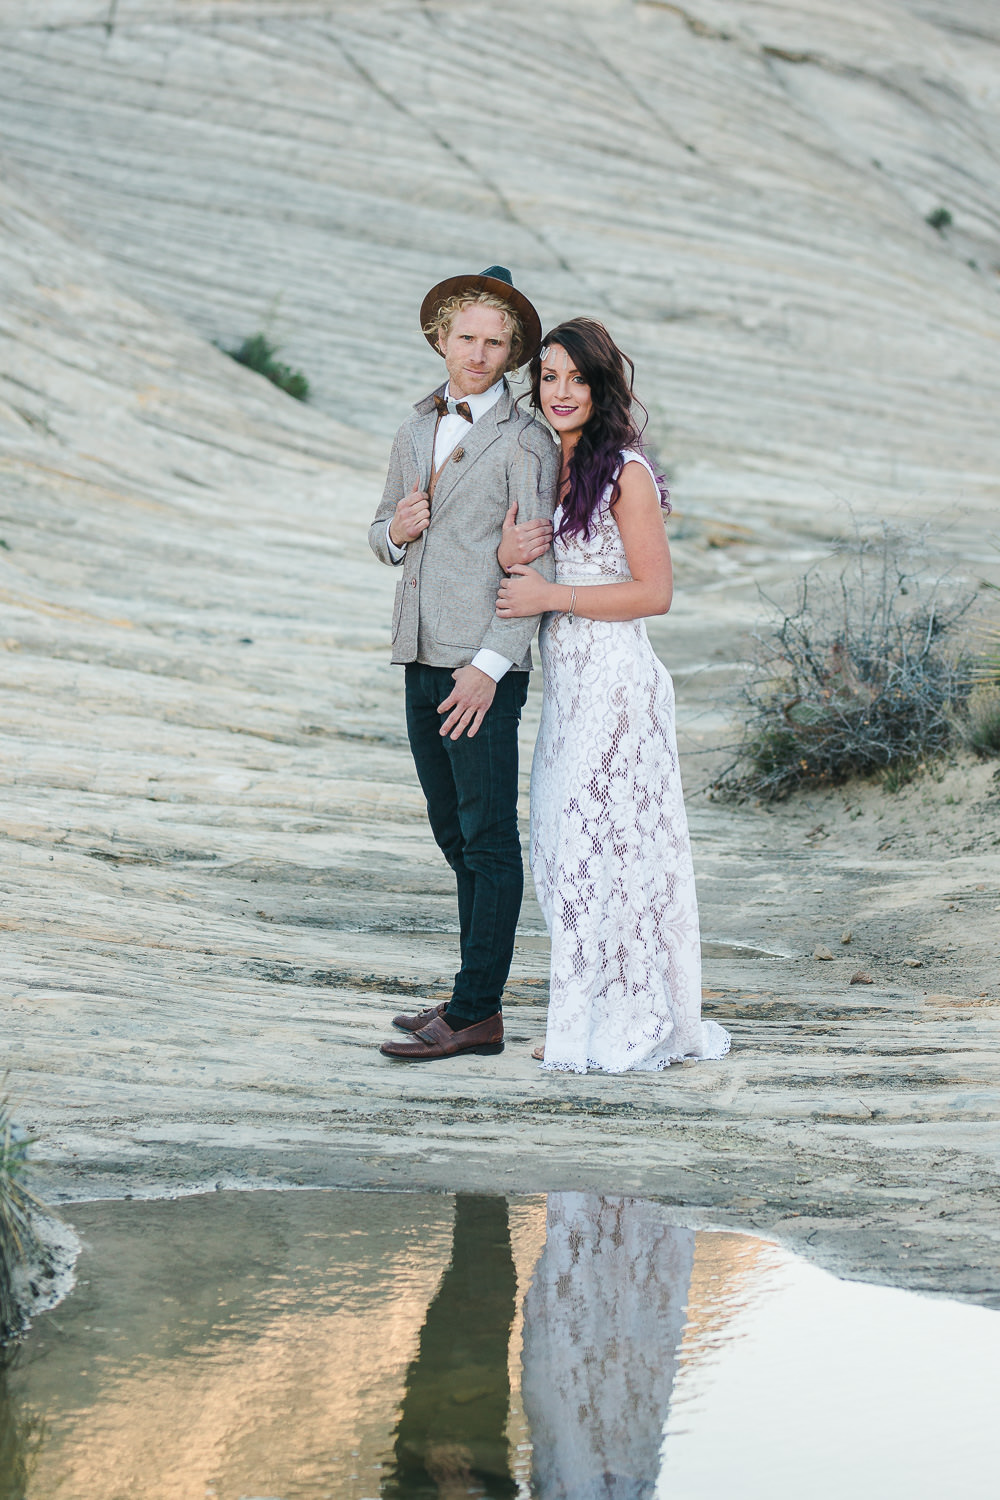 Bohemian styled elopement couple portraits in the desert of Southern Utah